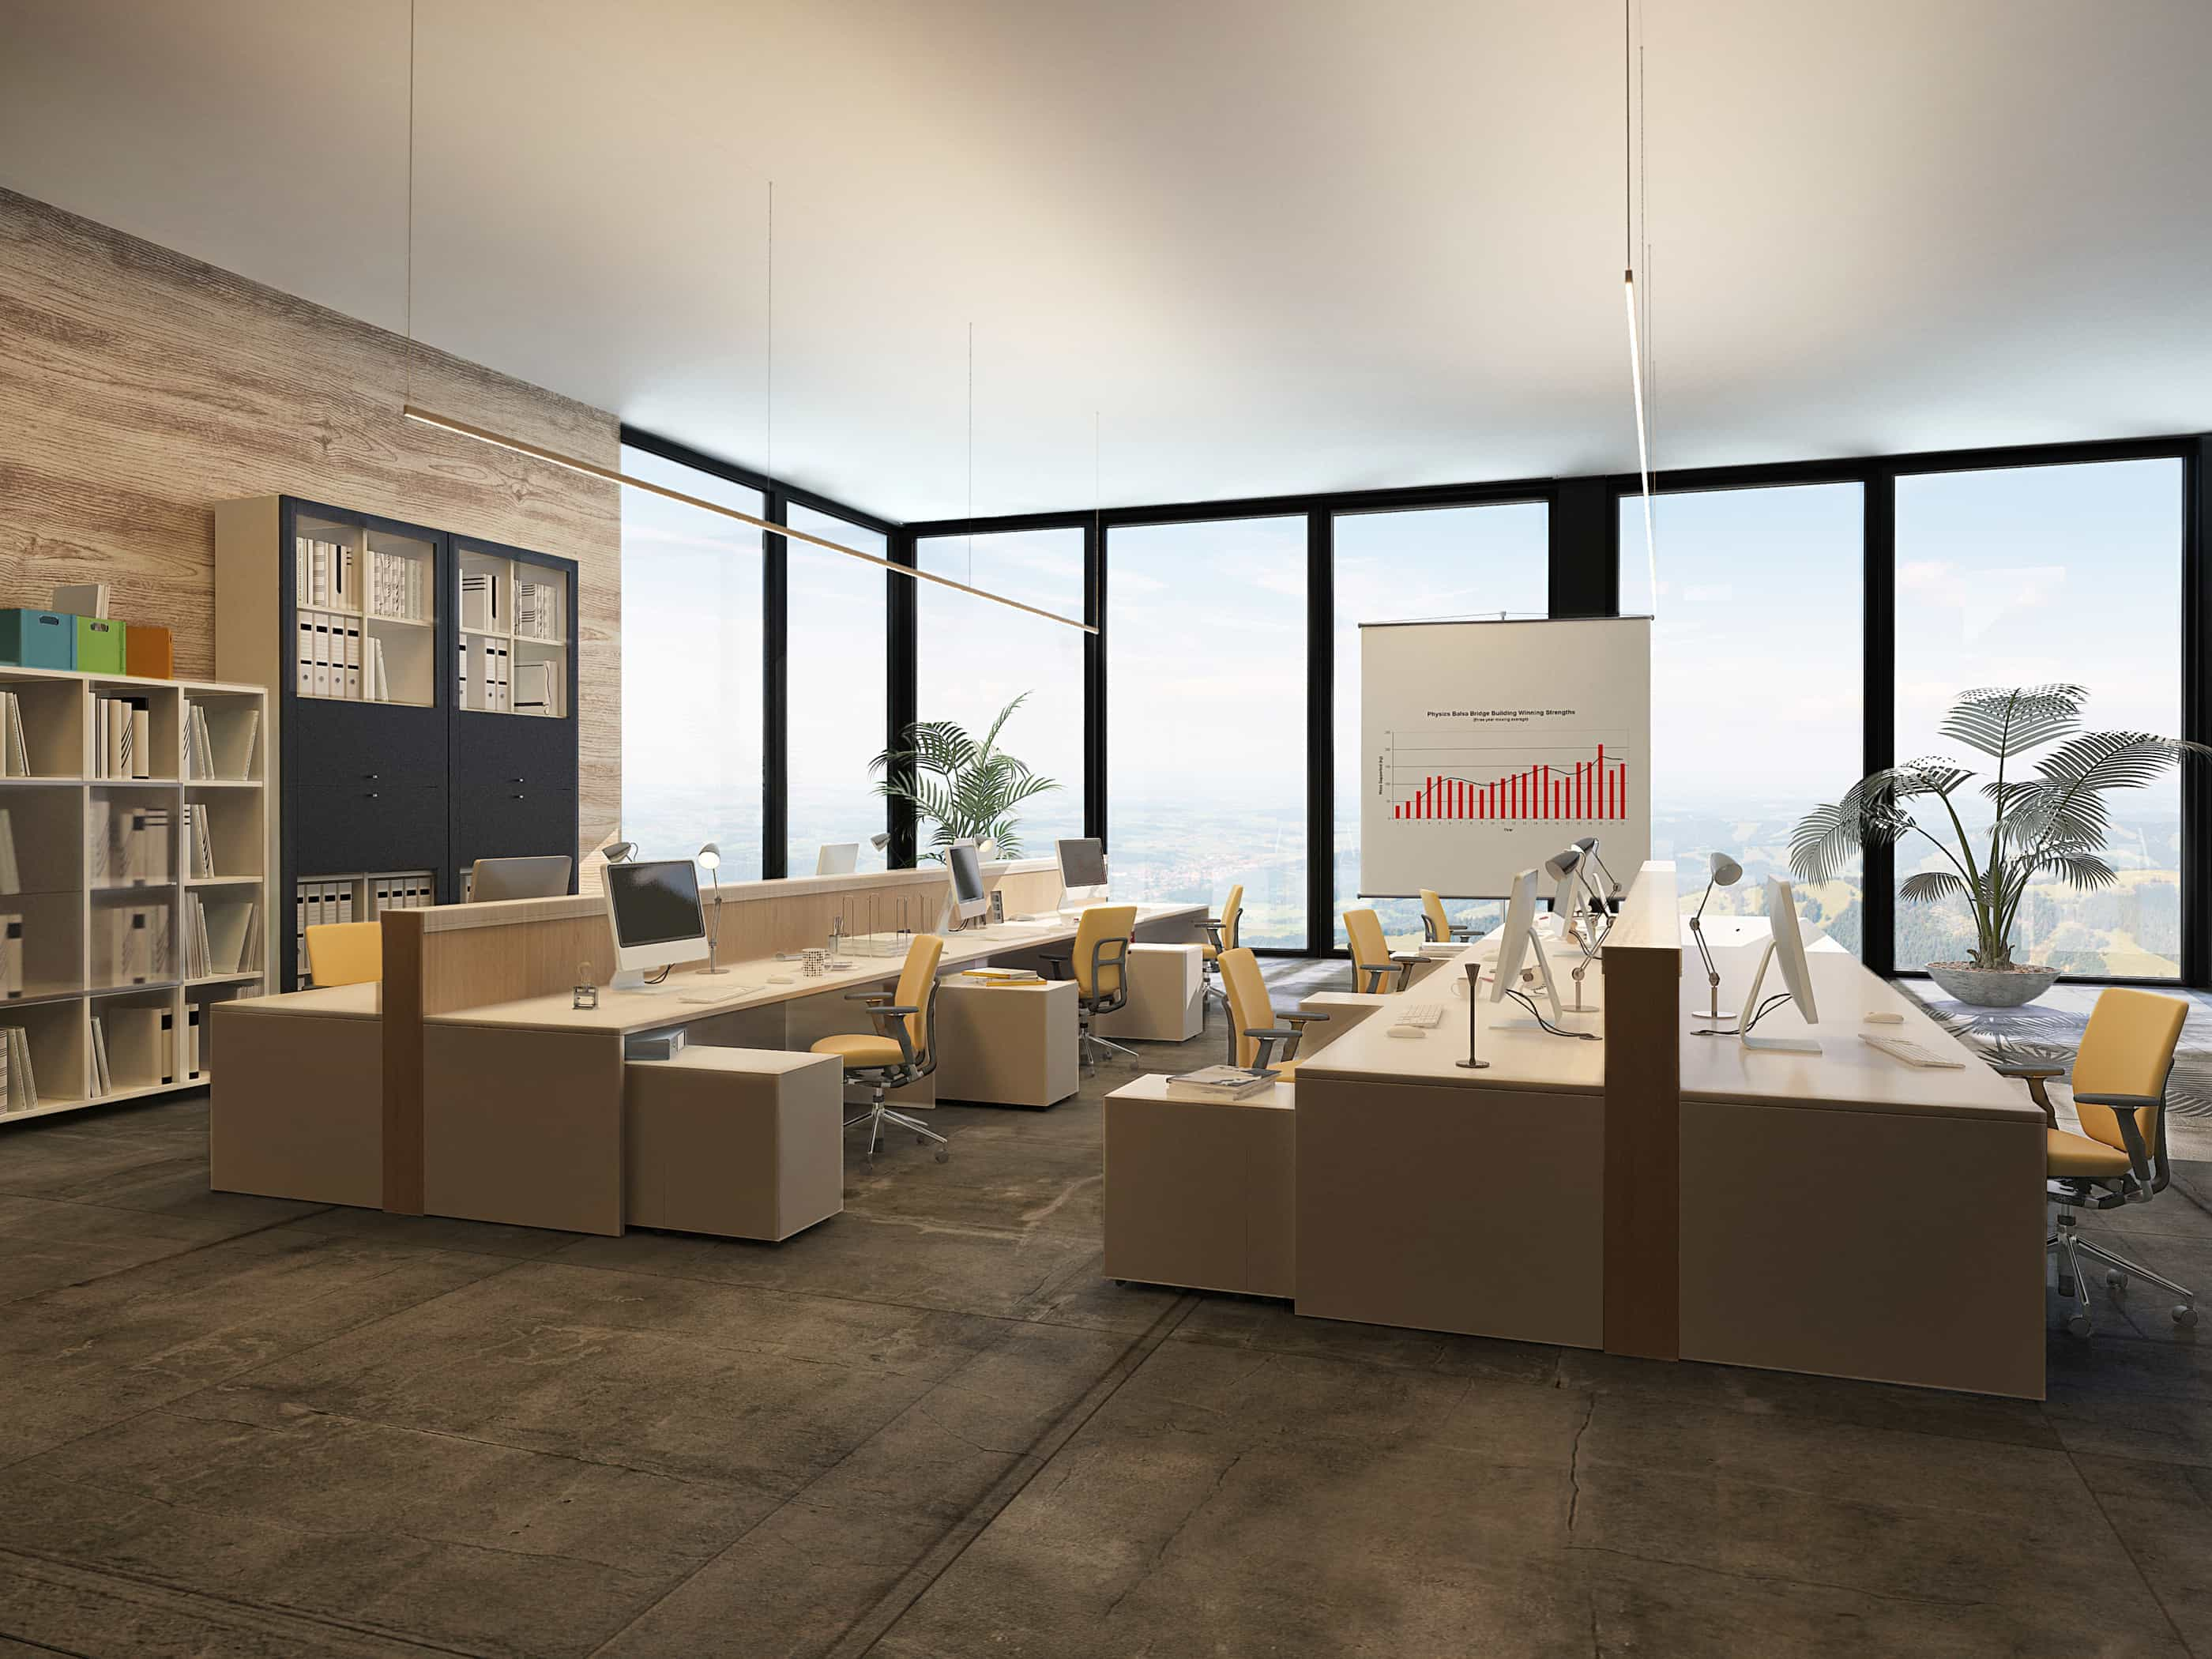 3D Rendering of Large open-plan commercial office with rows of w